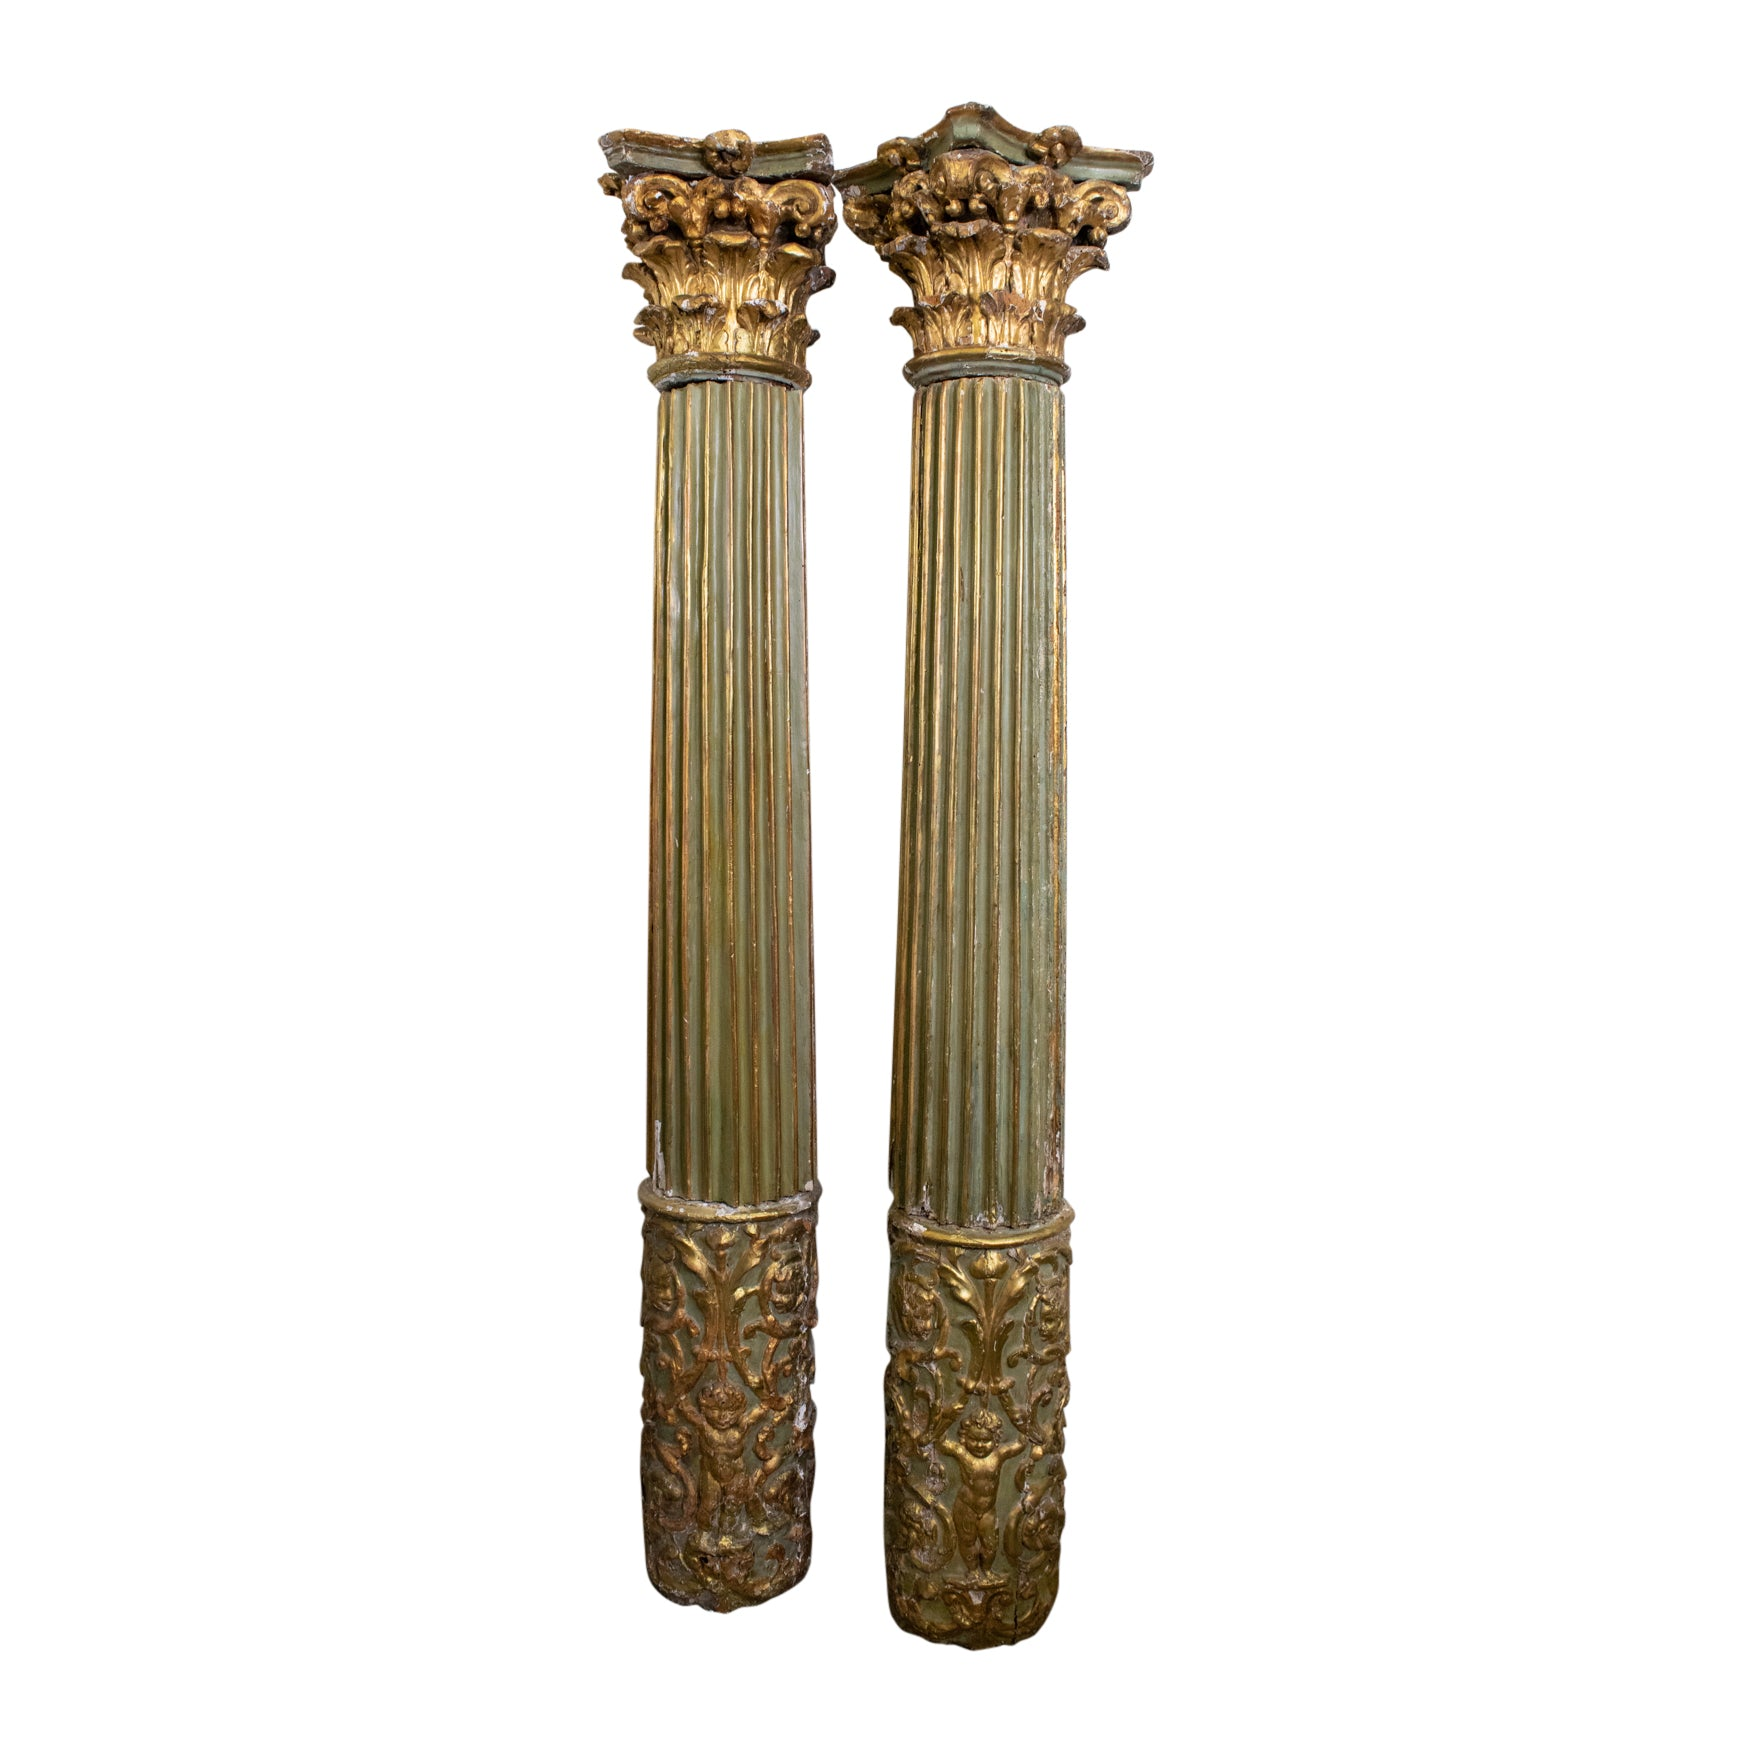 Pair of 19th Cenutry Green and Gilt Columns with corinthian top